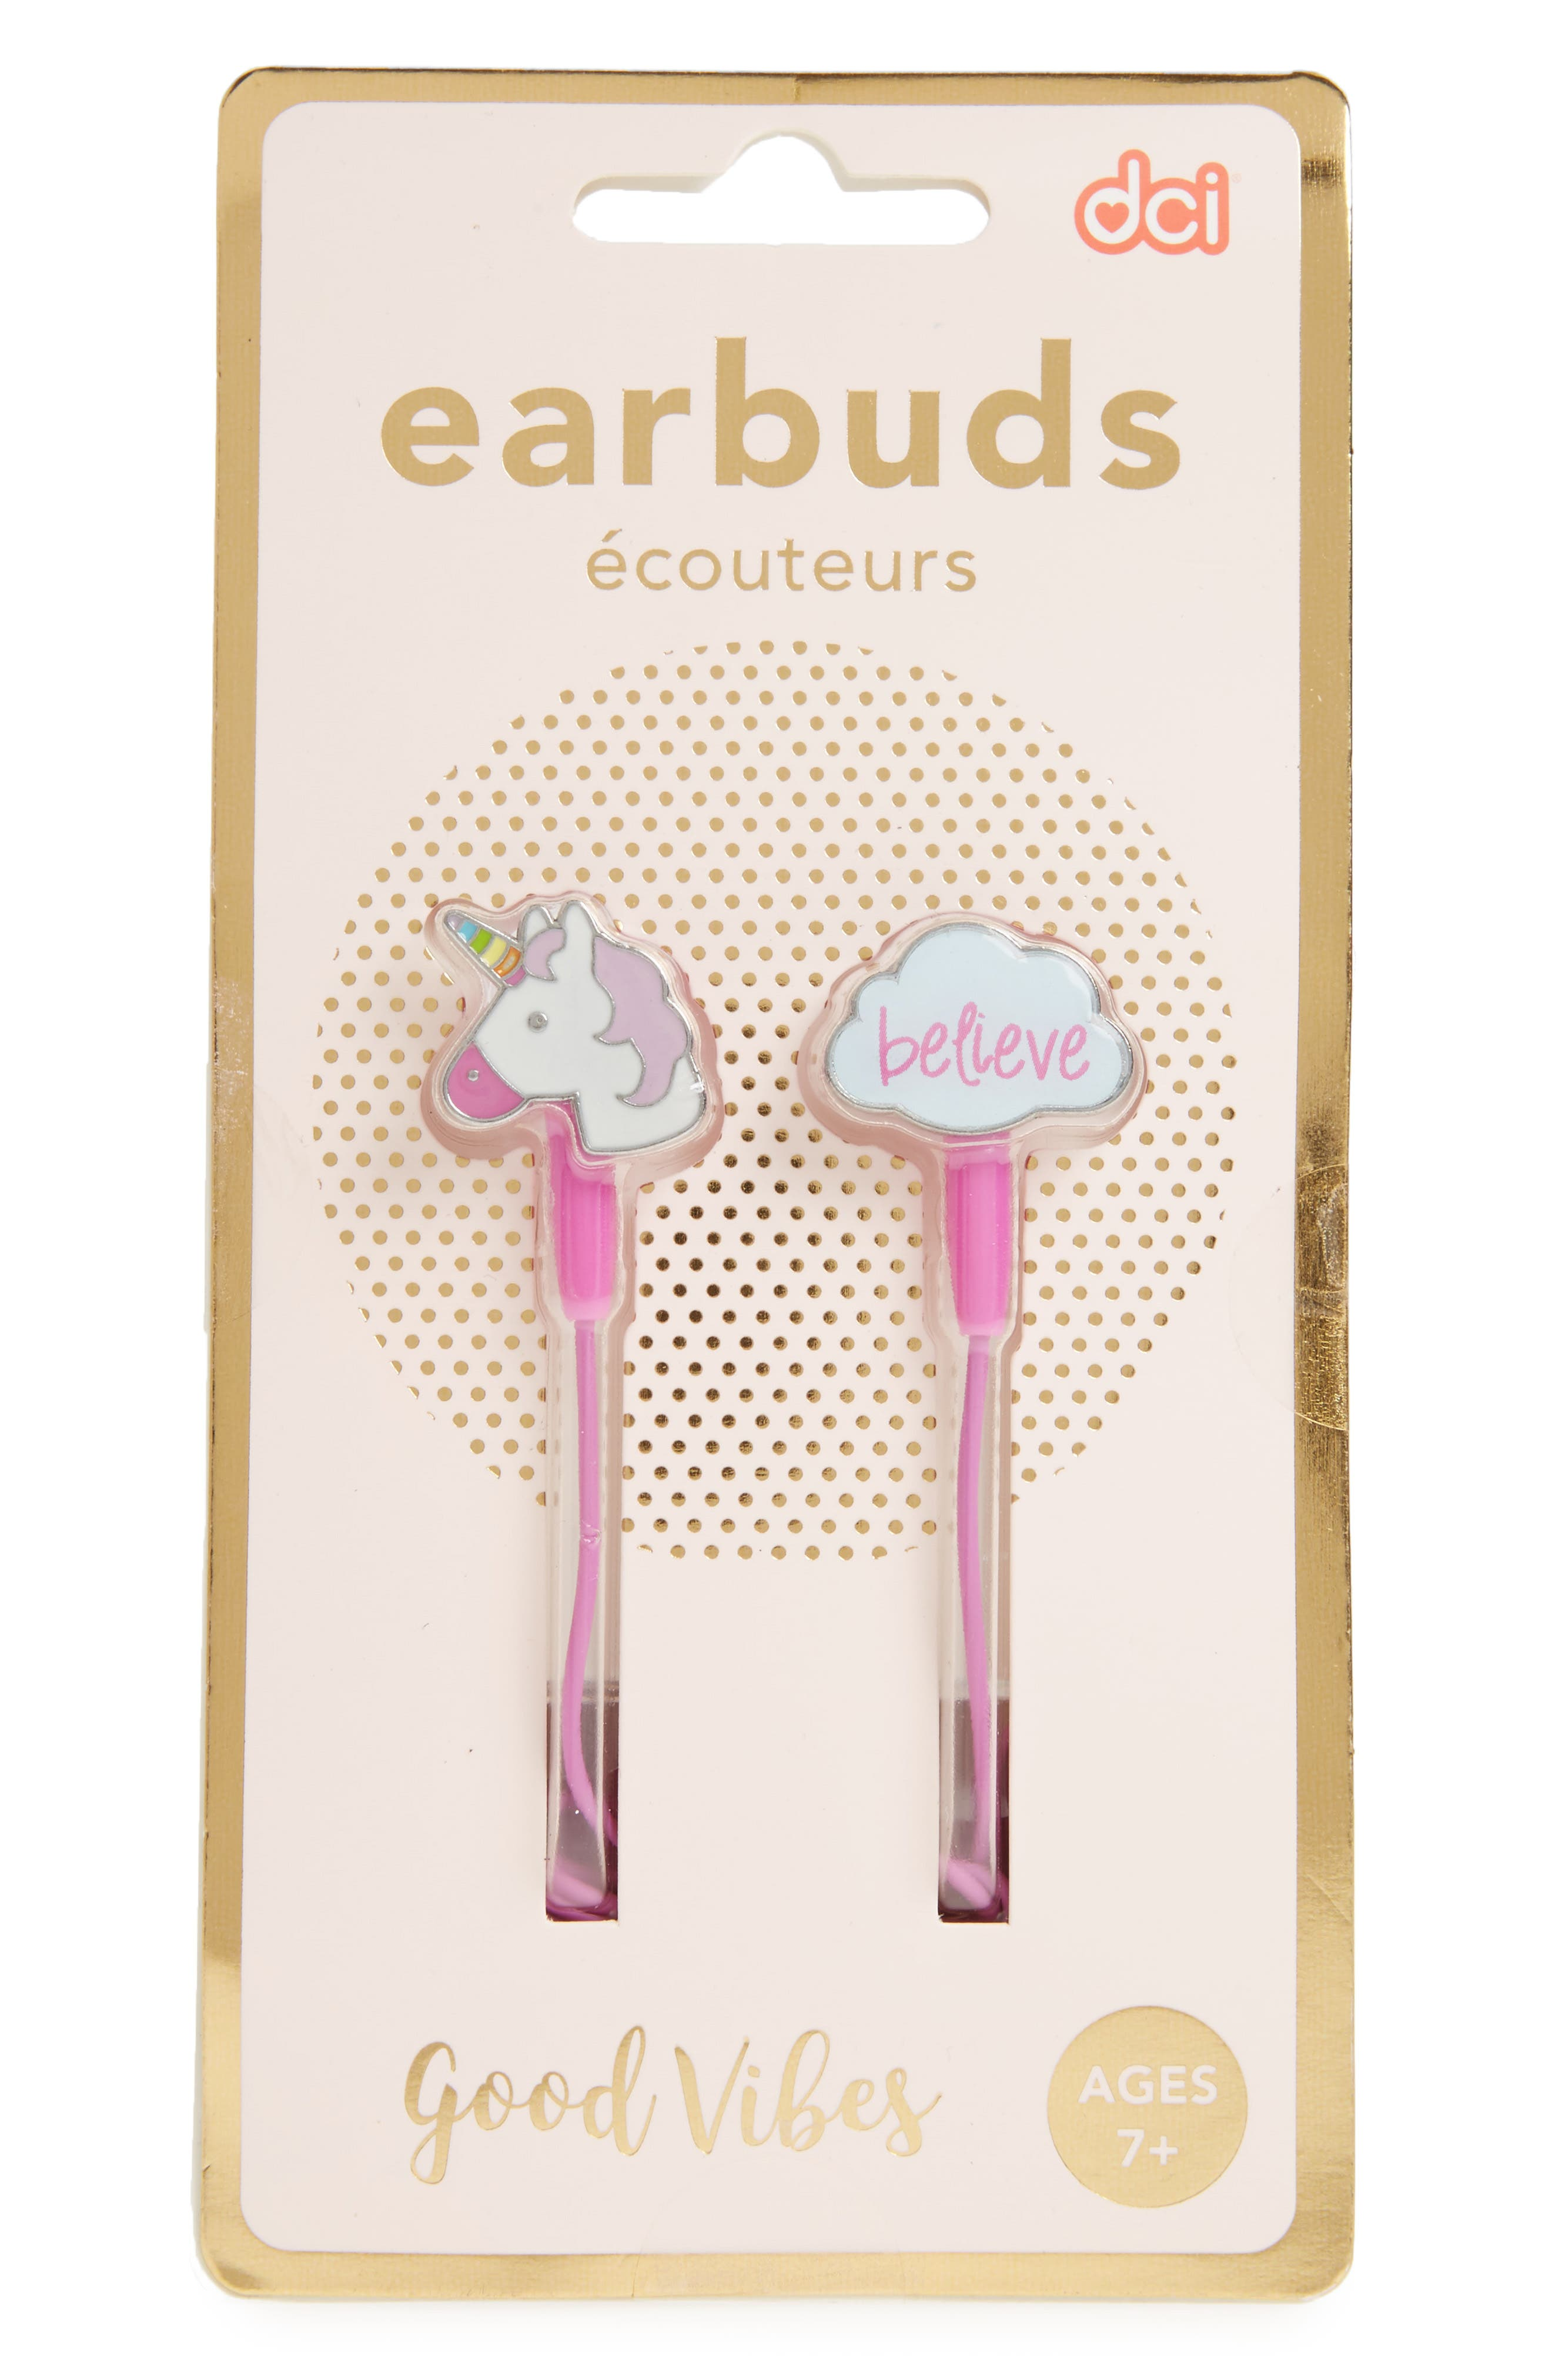 Good Vibes Earbuds,                         Main,                         color, 100